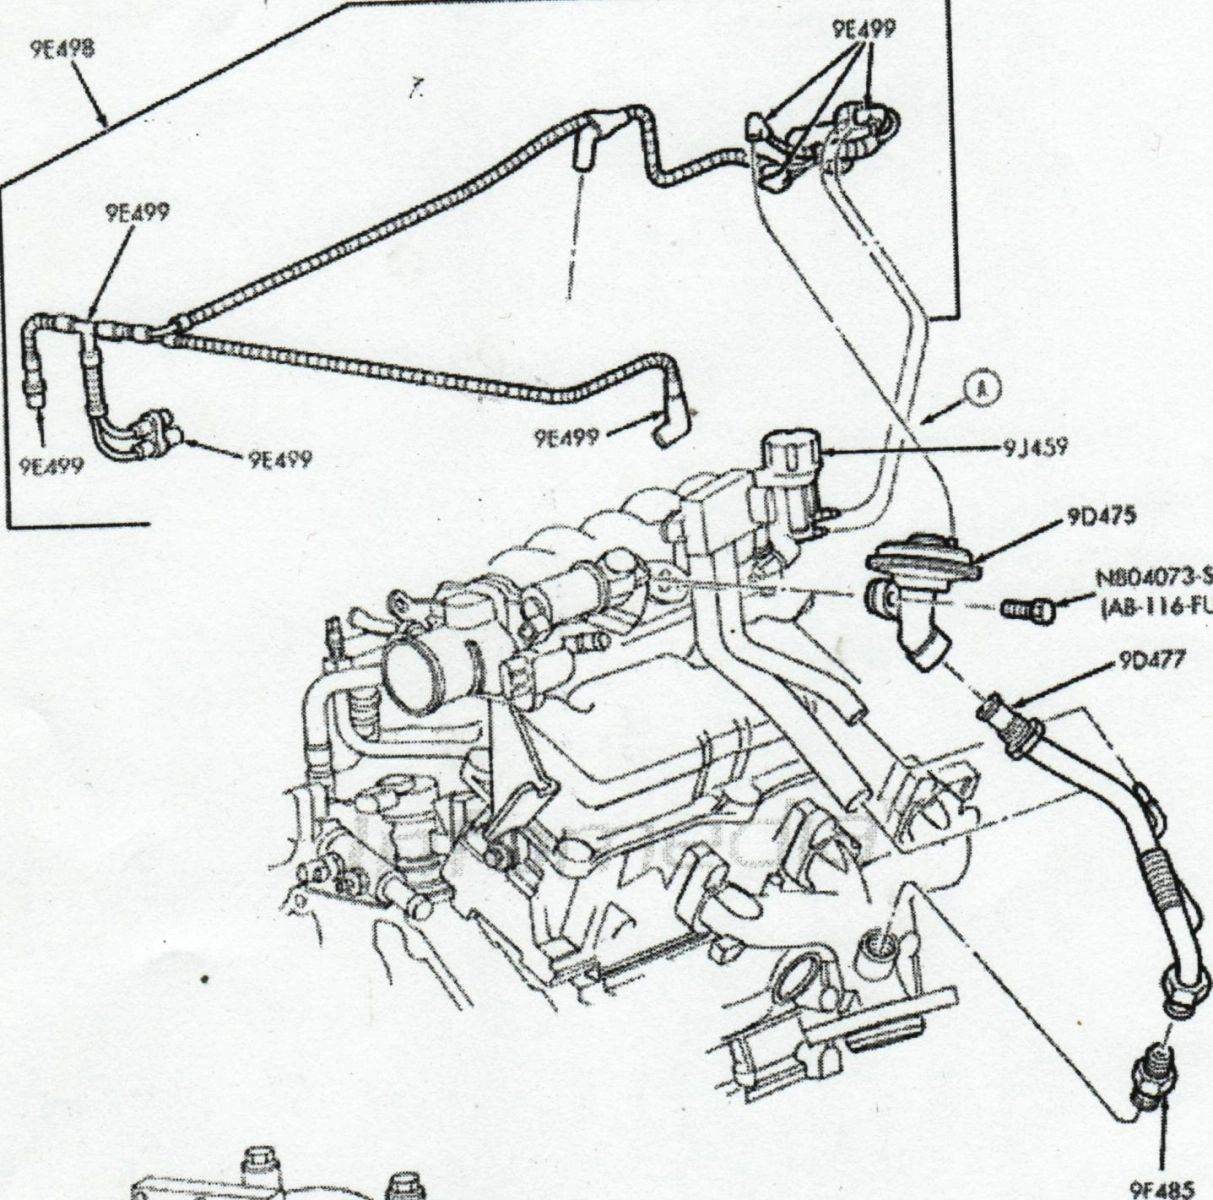 2003 taurus engine diagram